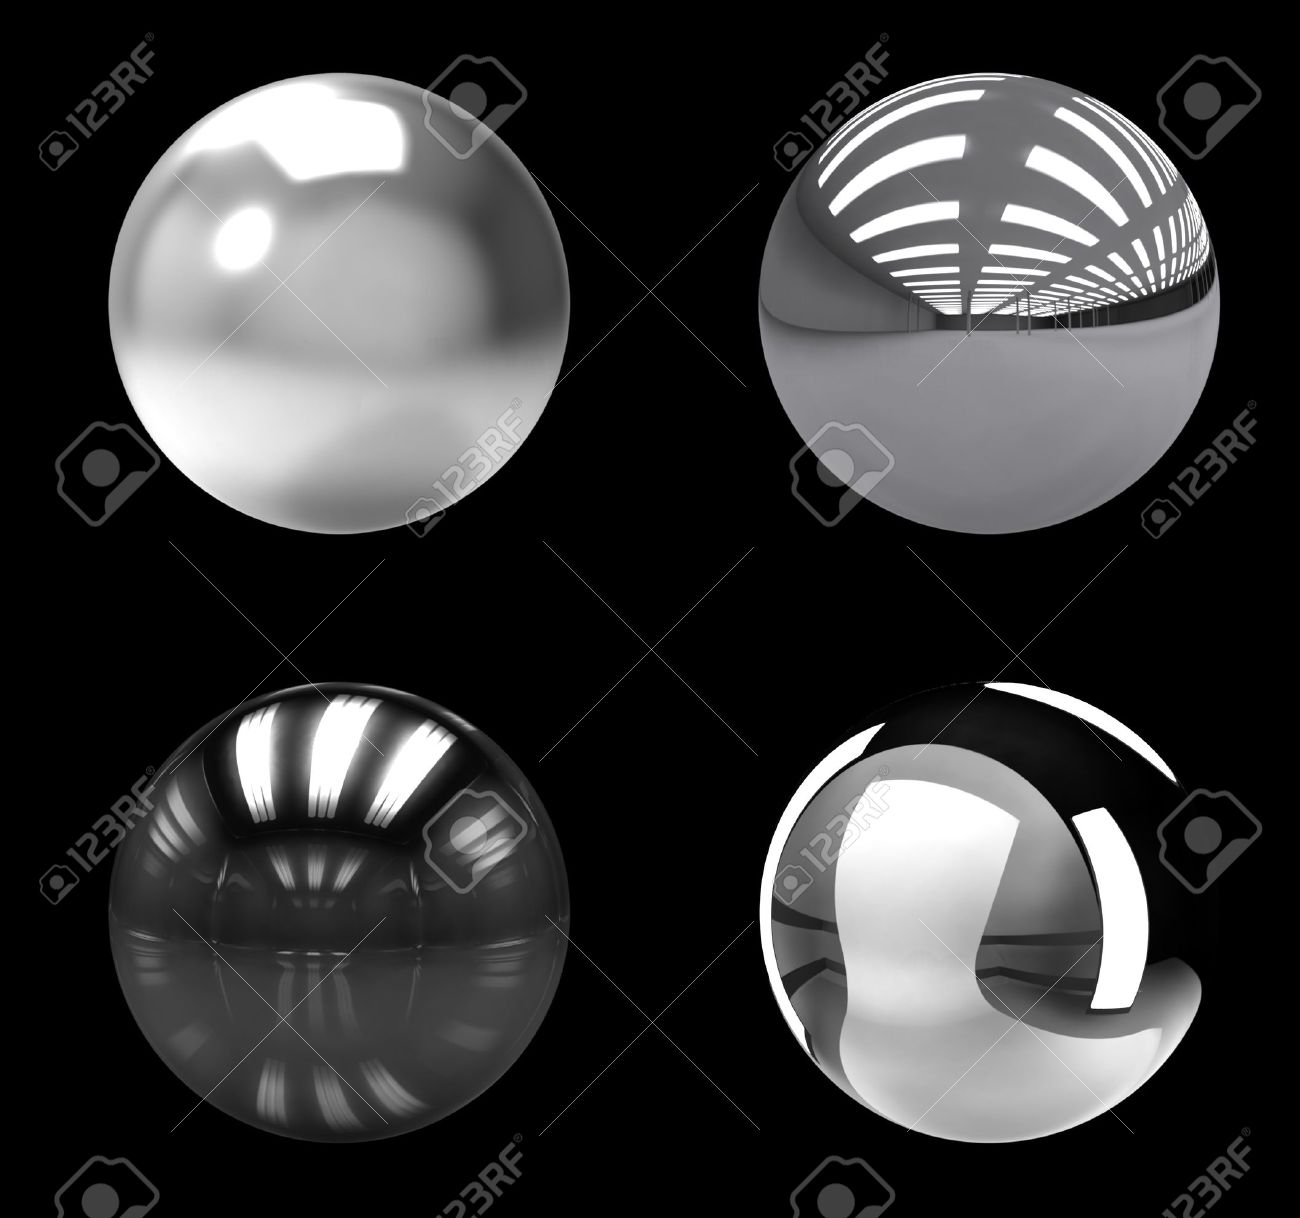 chrome balls group on black background stock photo, picture and